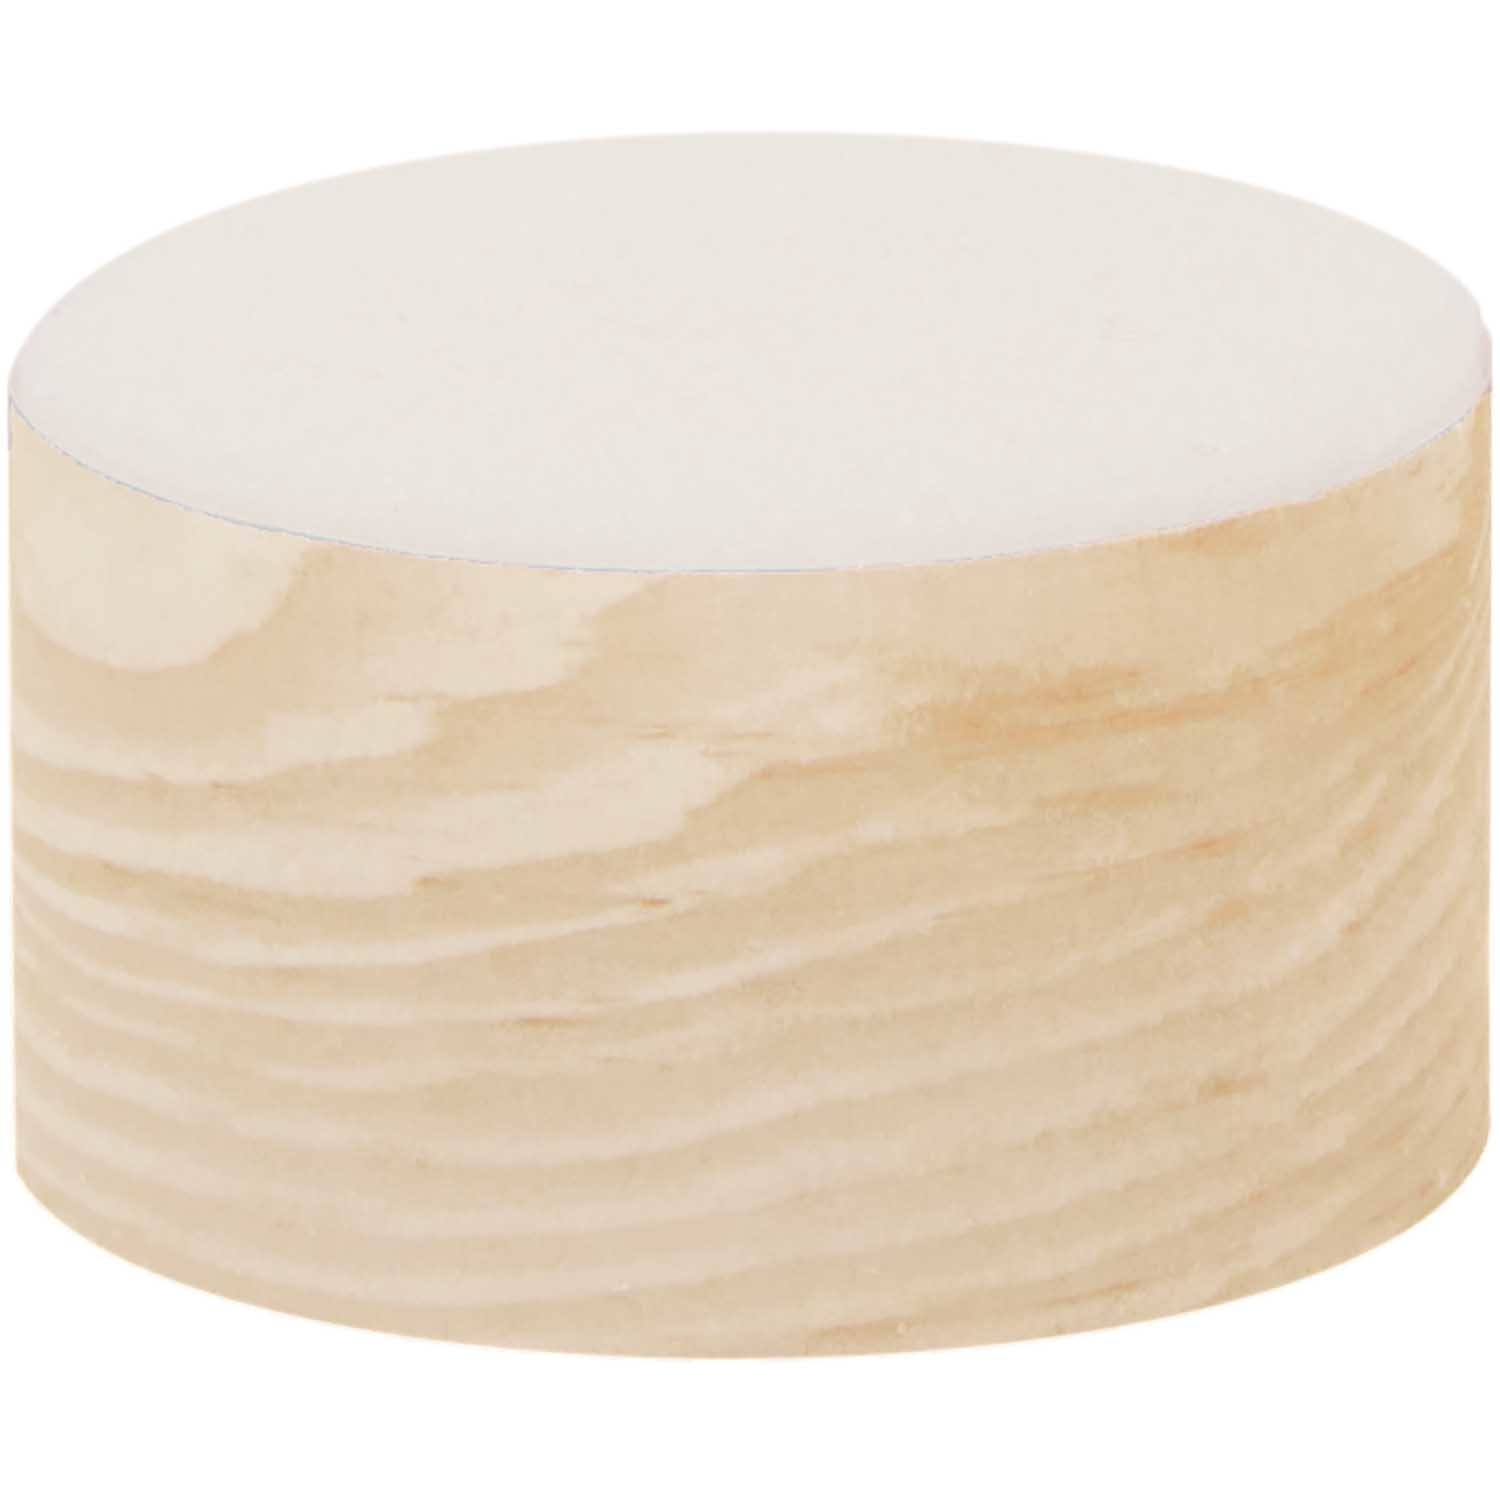 Rico NAY Floral foam for dried flowers, round, 7,5cm x 4cm